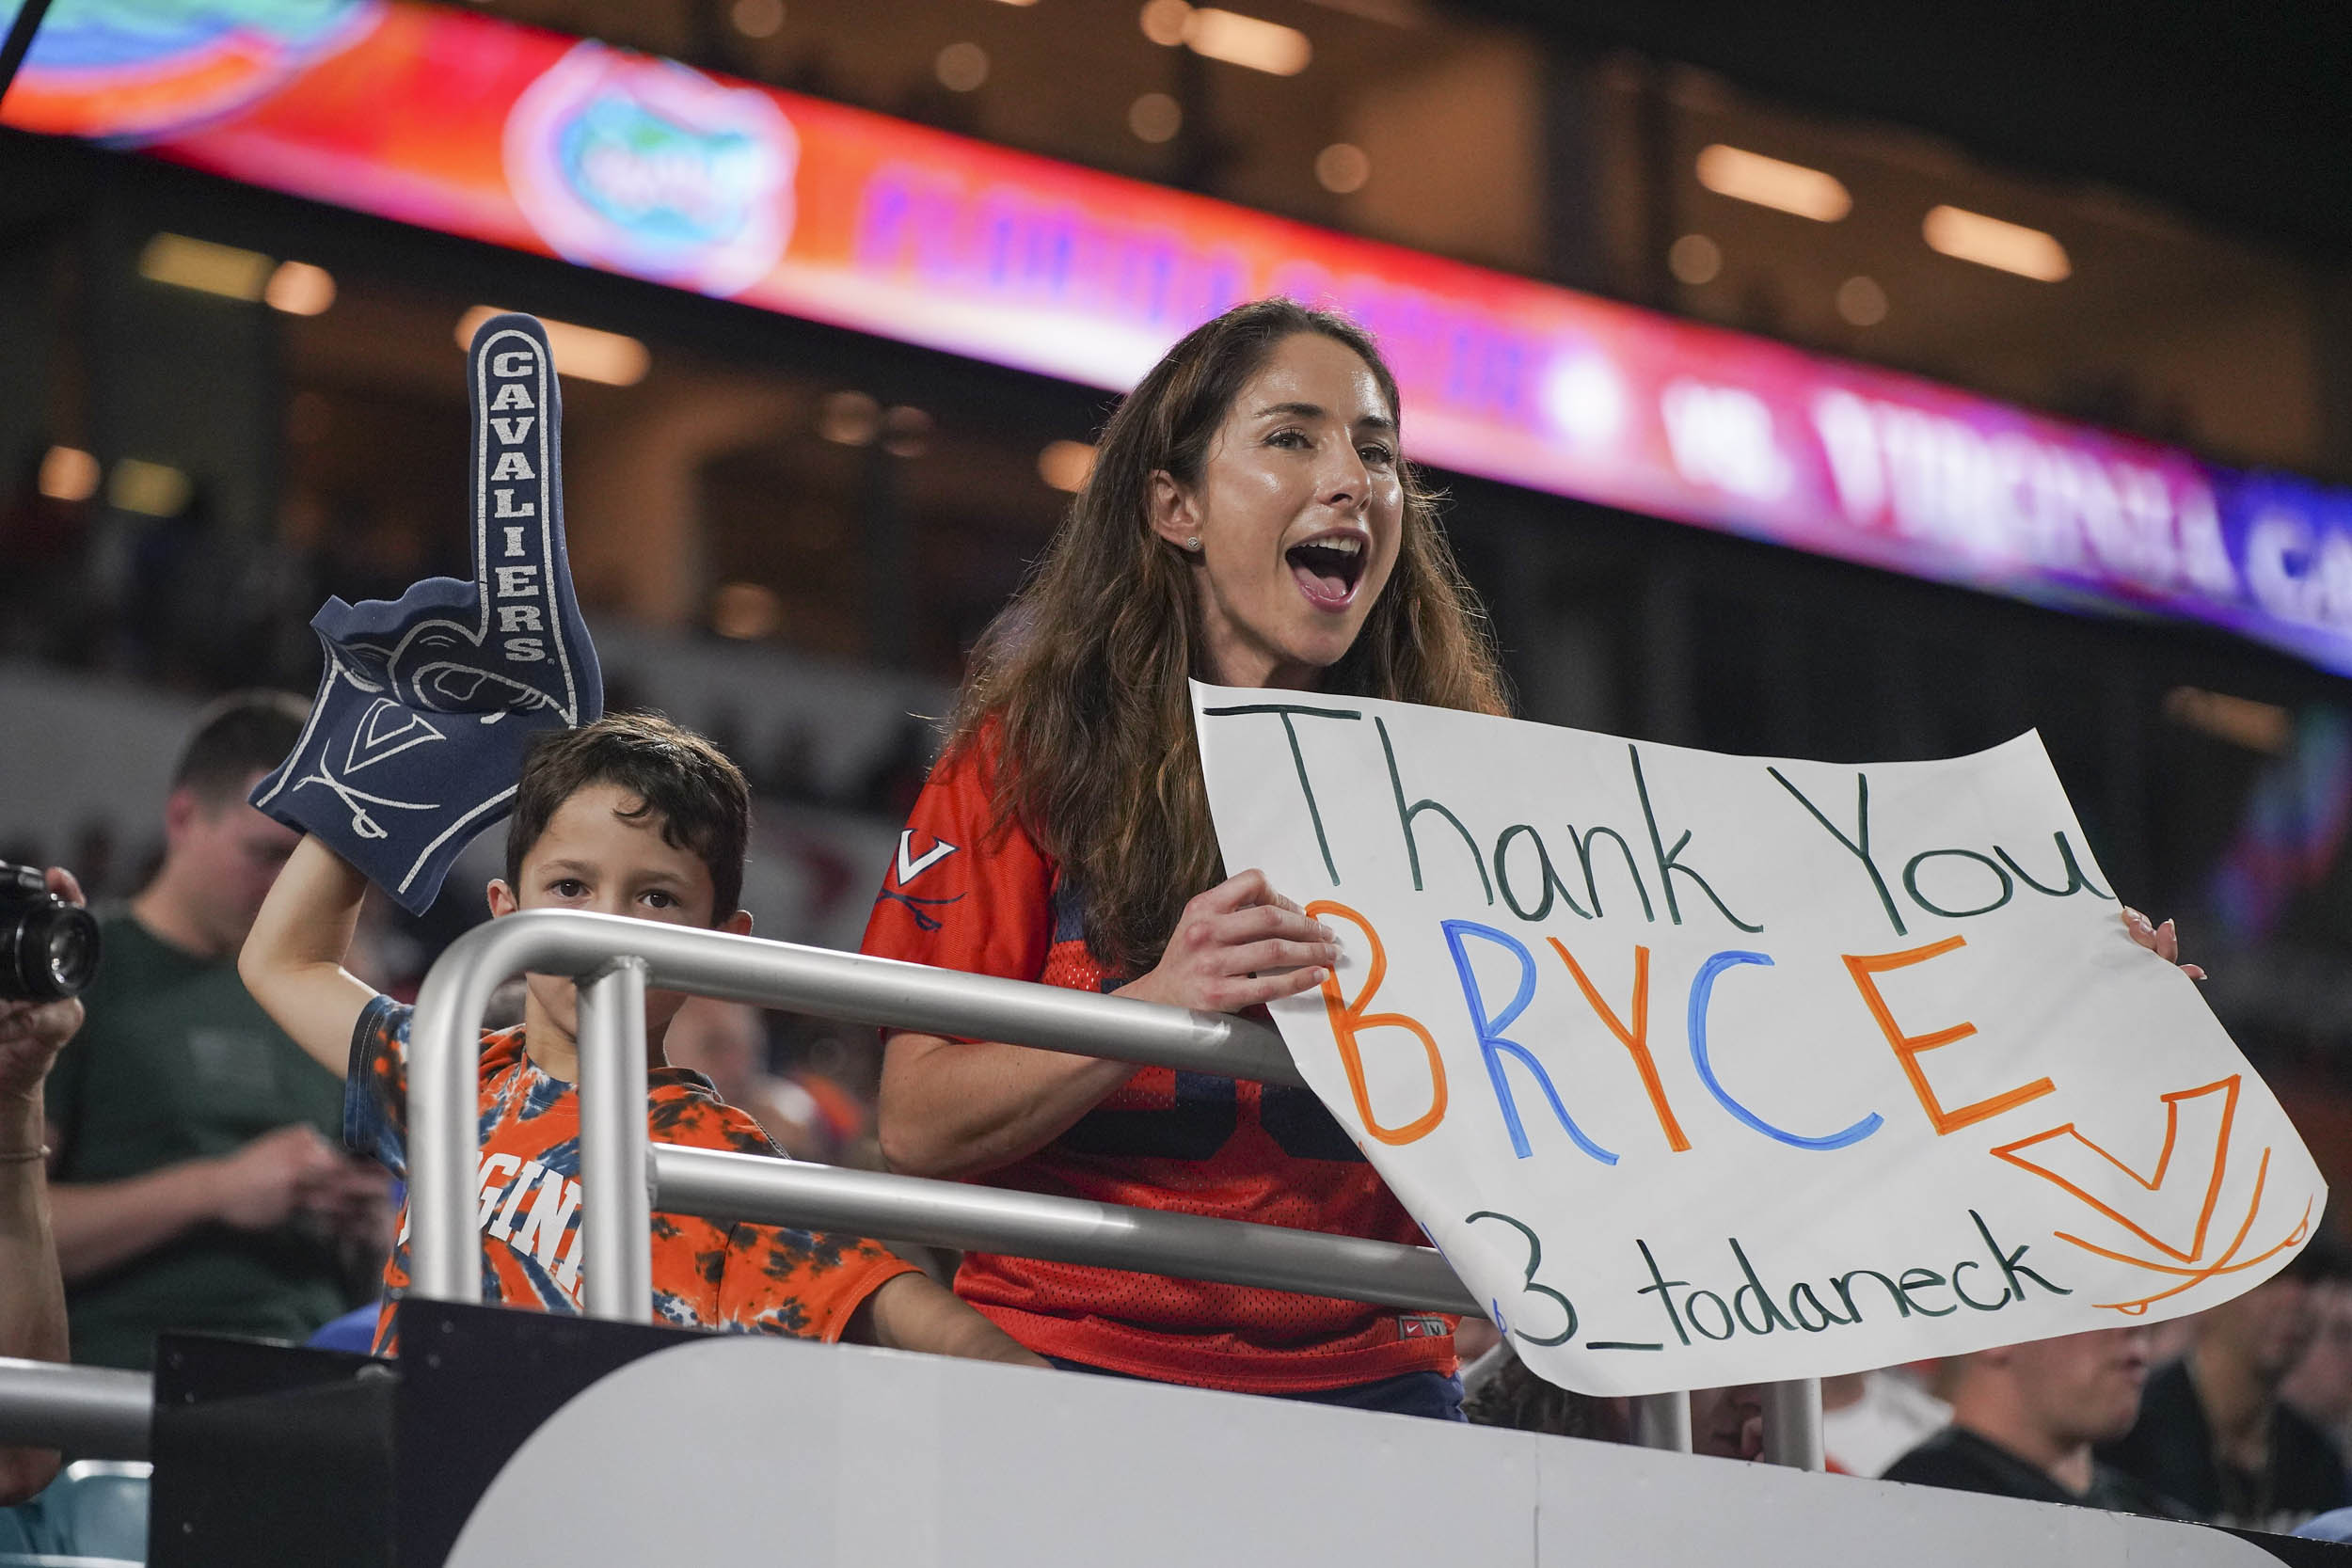 Fans made sure to show their appreciation for UVA players playing in their final game, including Bryce Perkins.